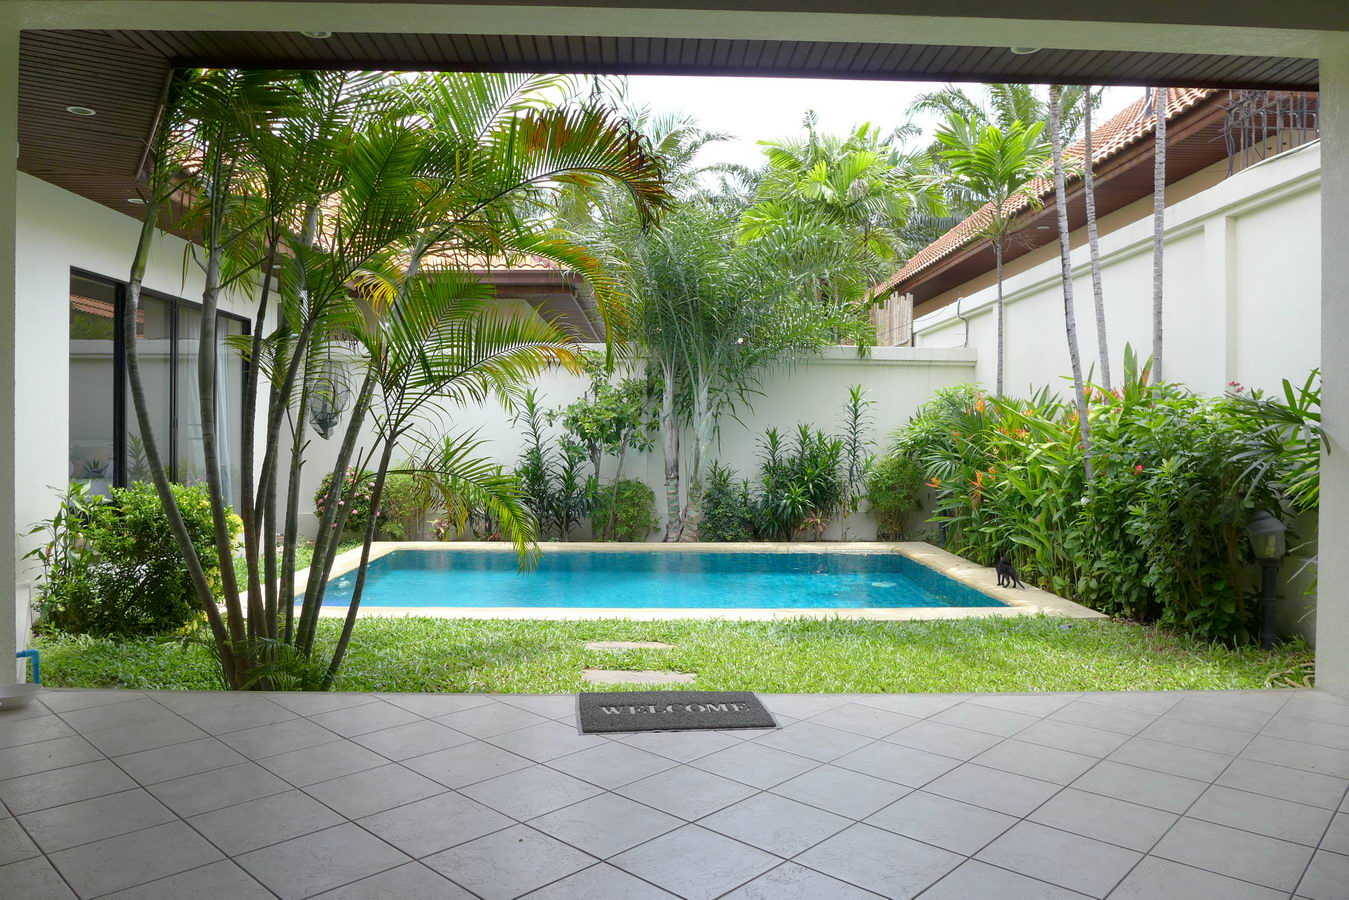 Pattaya Holiday Villa With Private Swimming Pool Rent Pattaya Properties 24 Real Estate